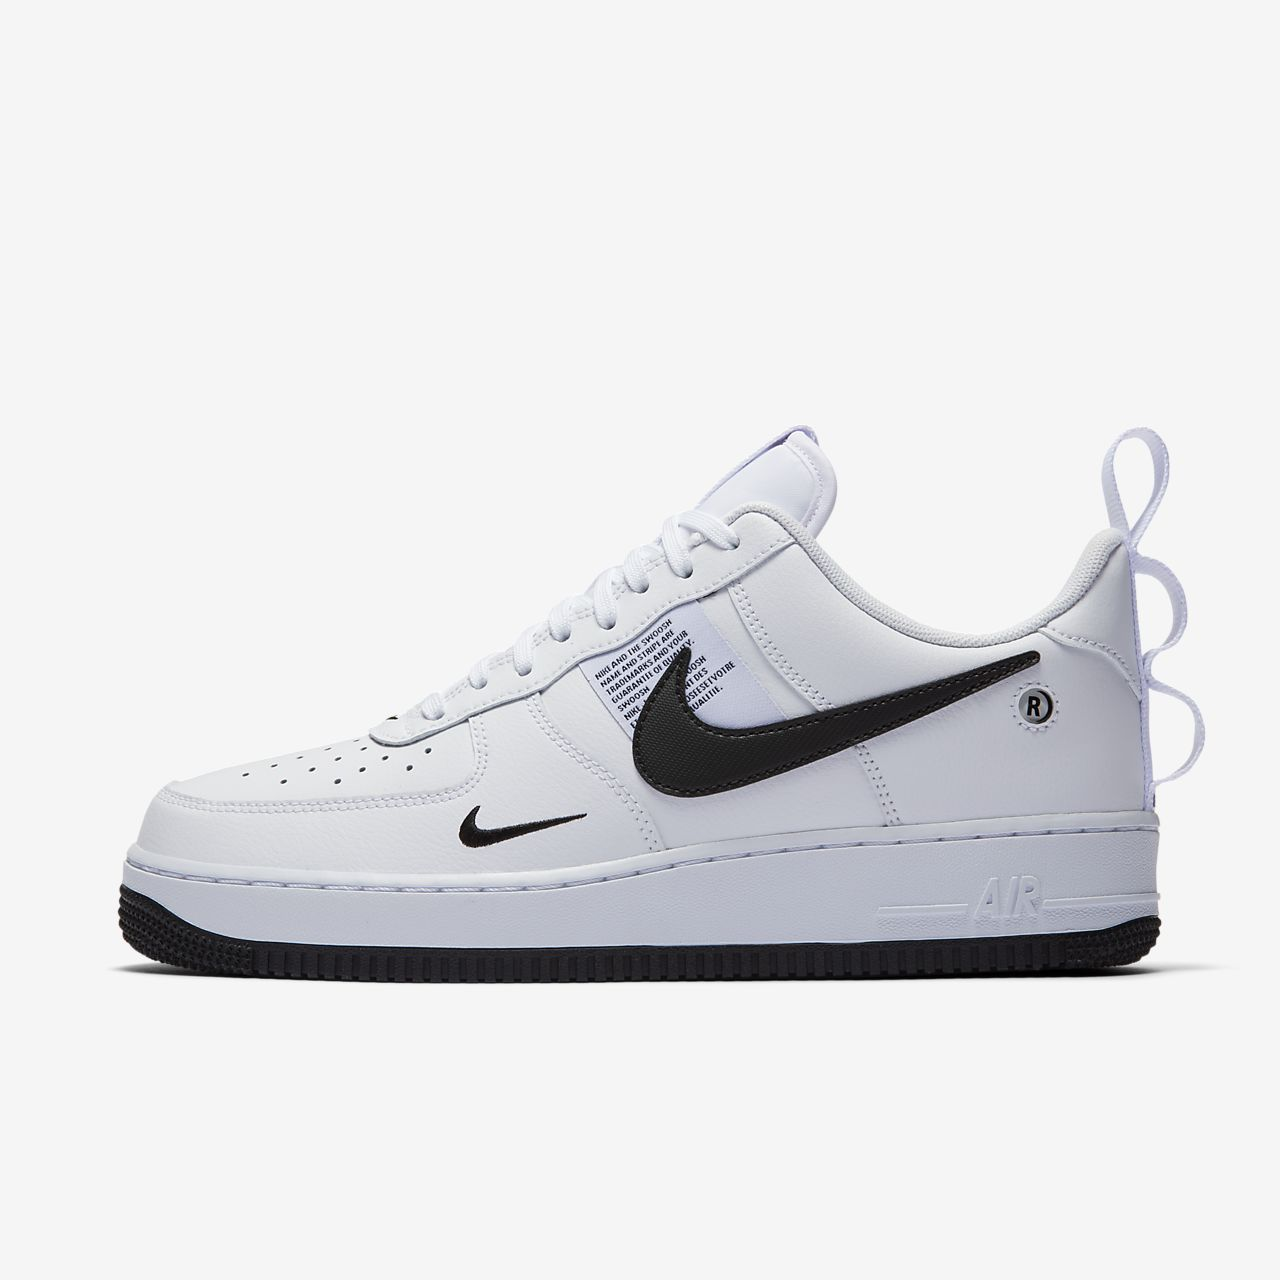 Chaussure Nike Air Force 1 LV8 UL pour Homme